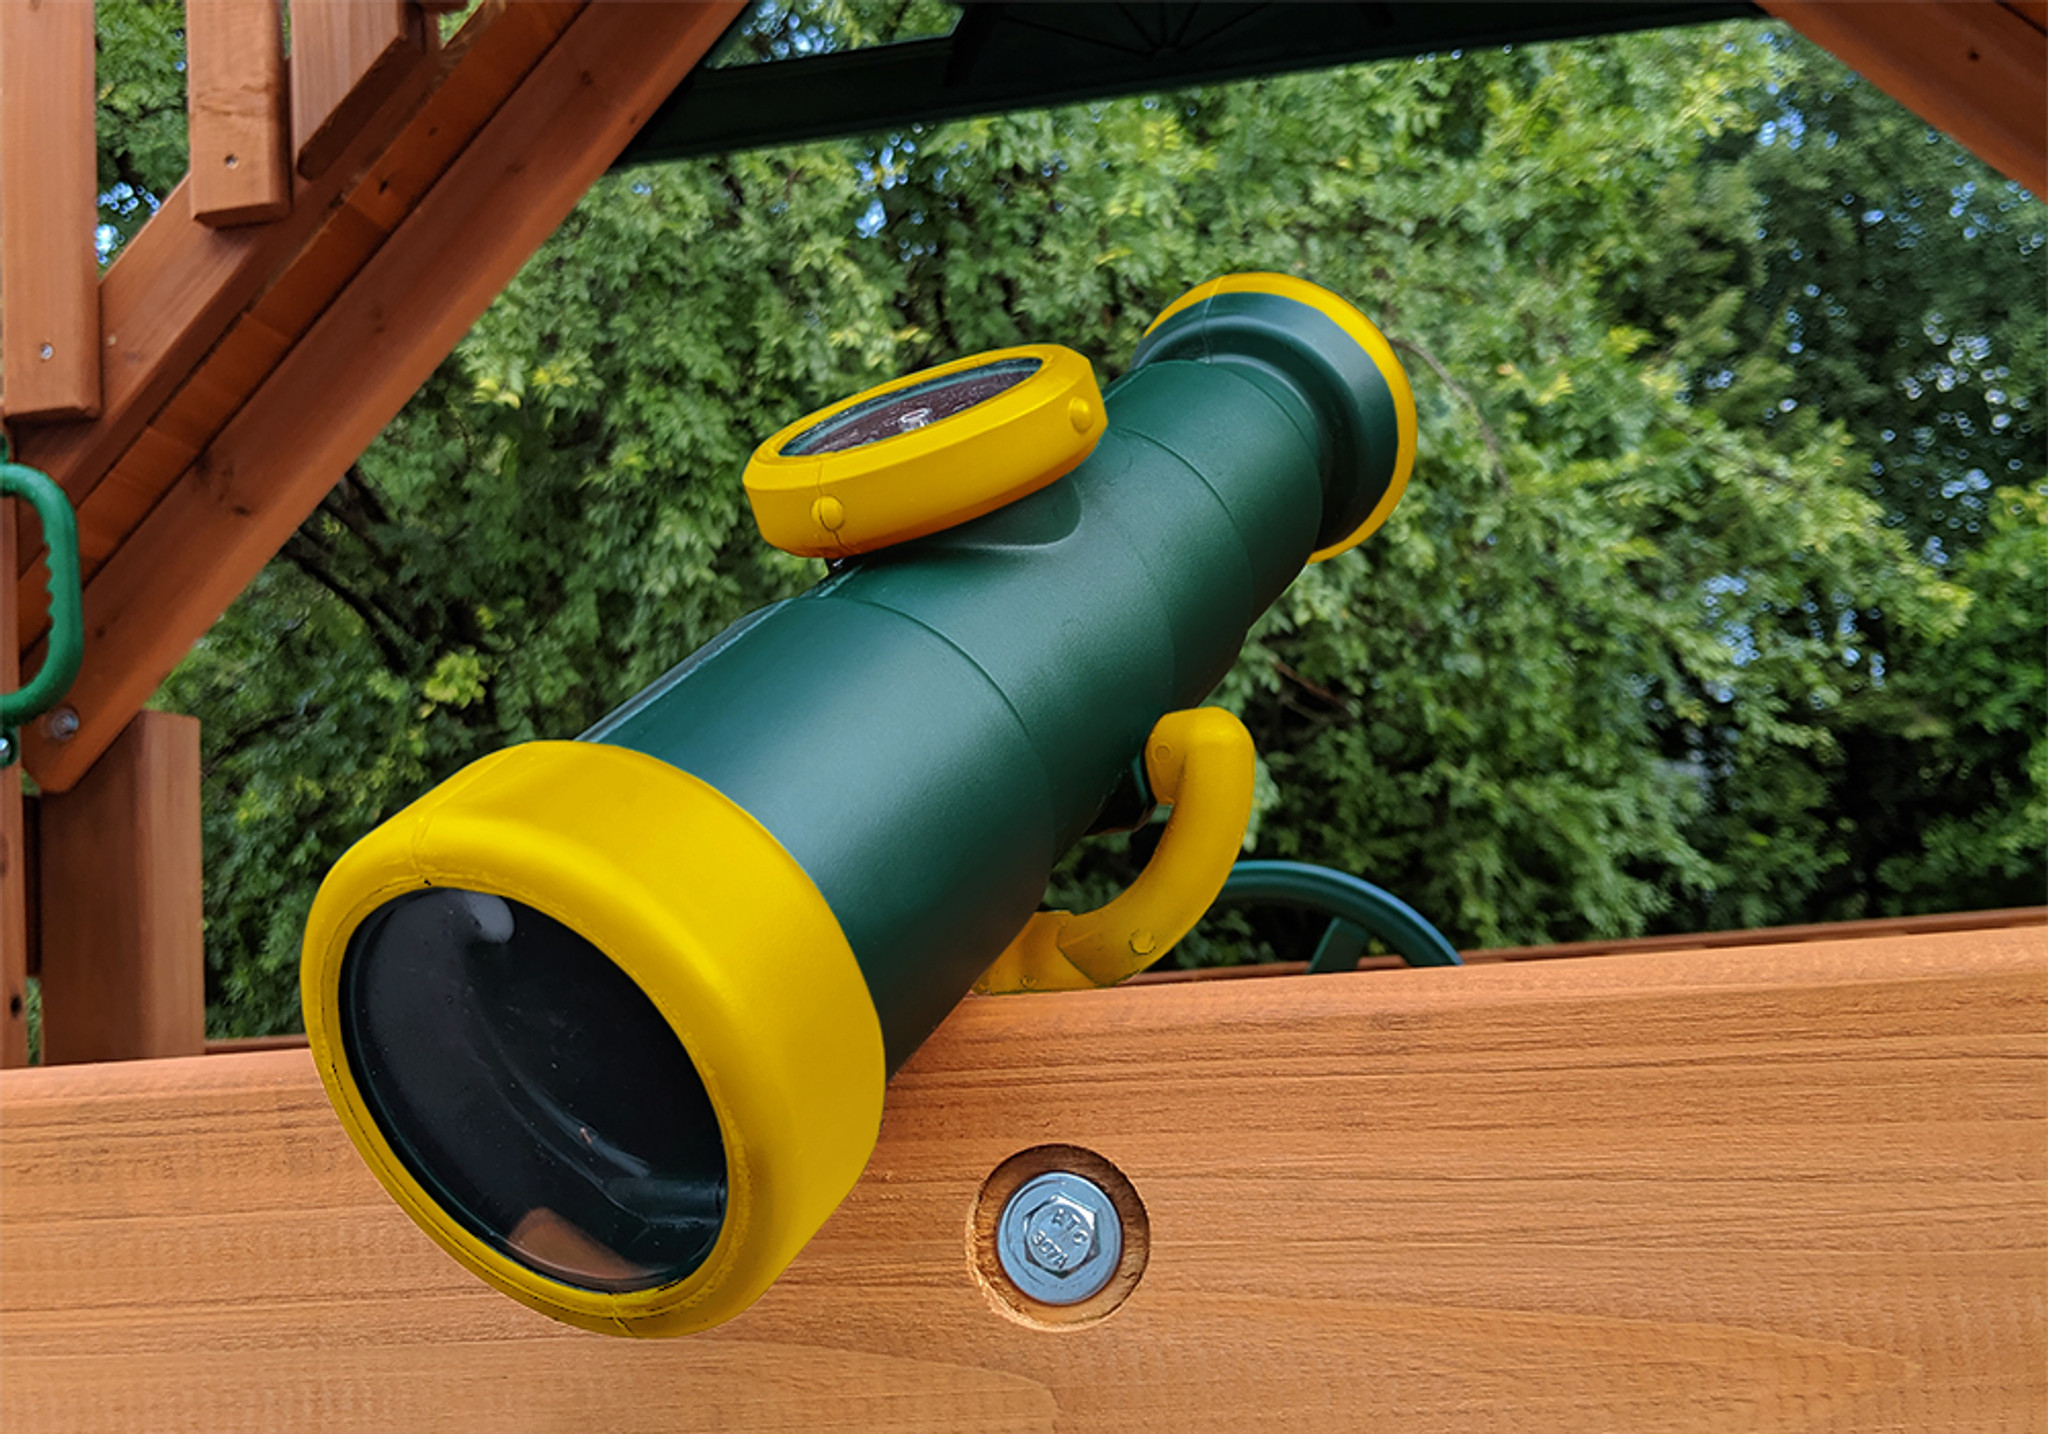 Frontal view of Telescope with Compass from PlayNation Play Systems.